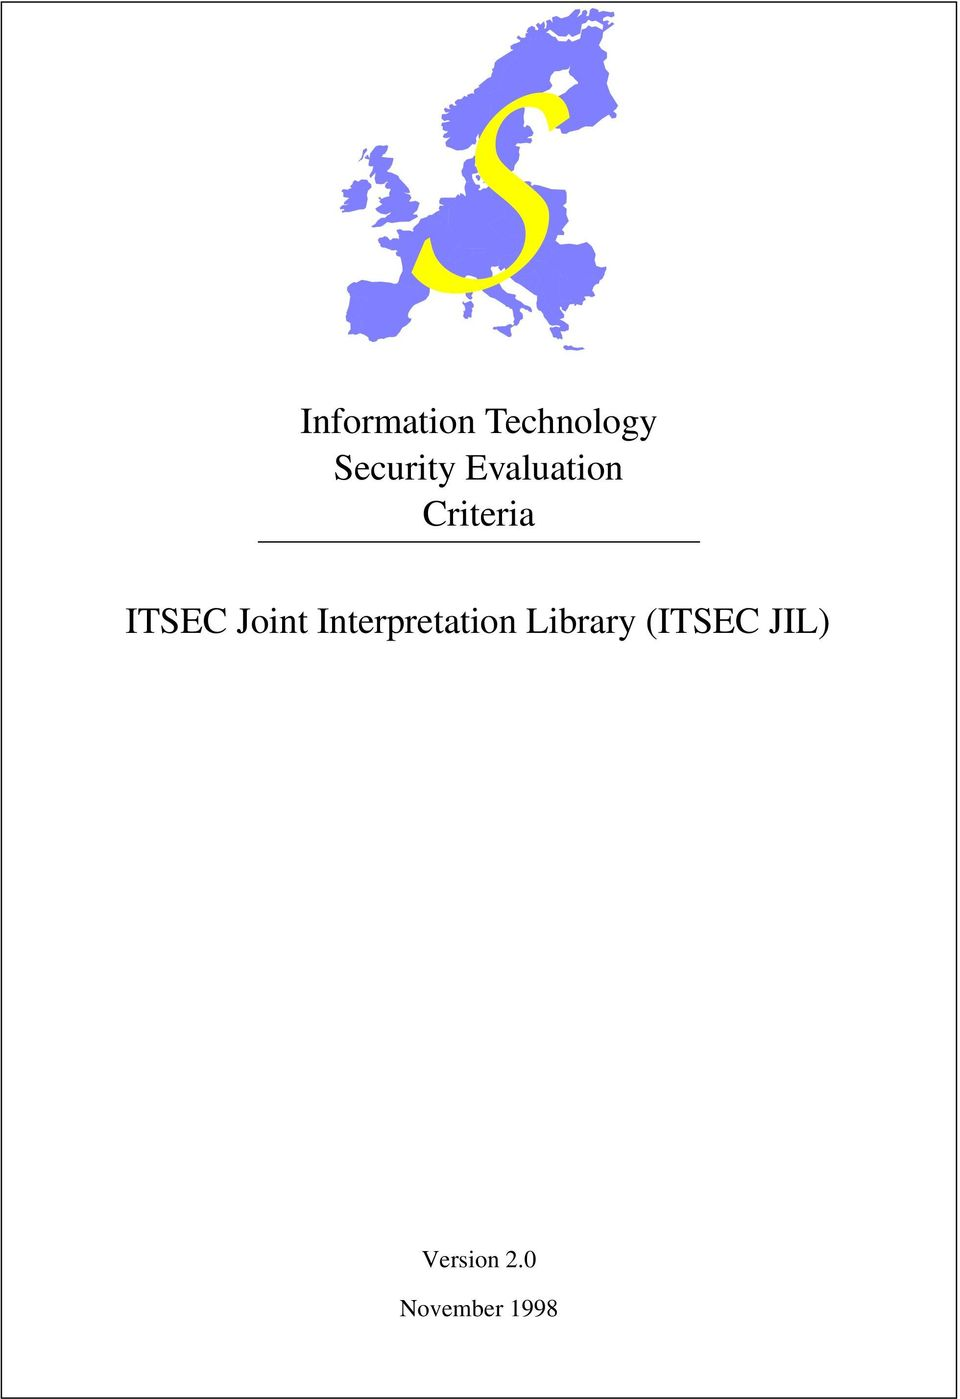 ITSEC Joint Interpretation